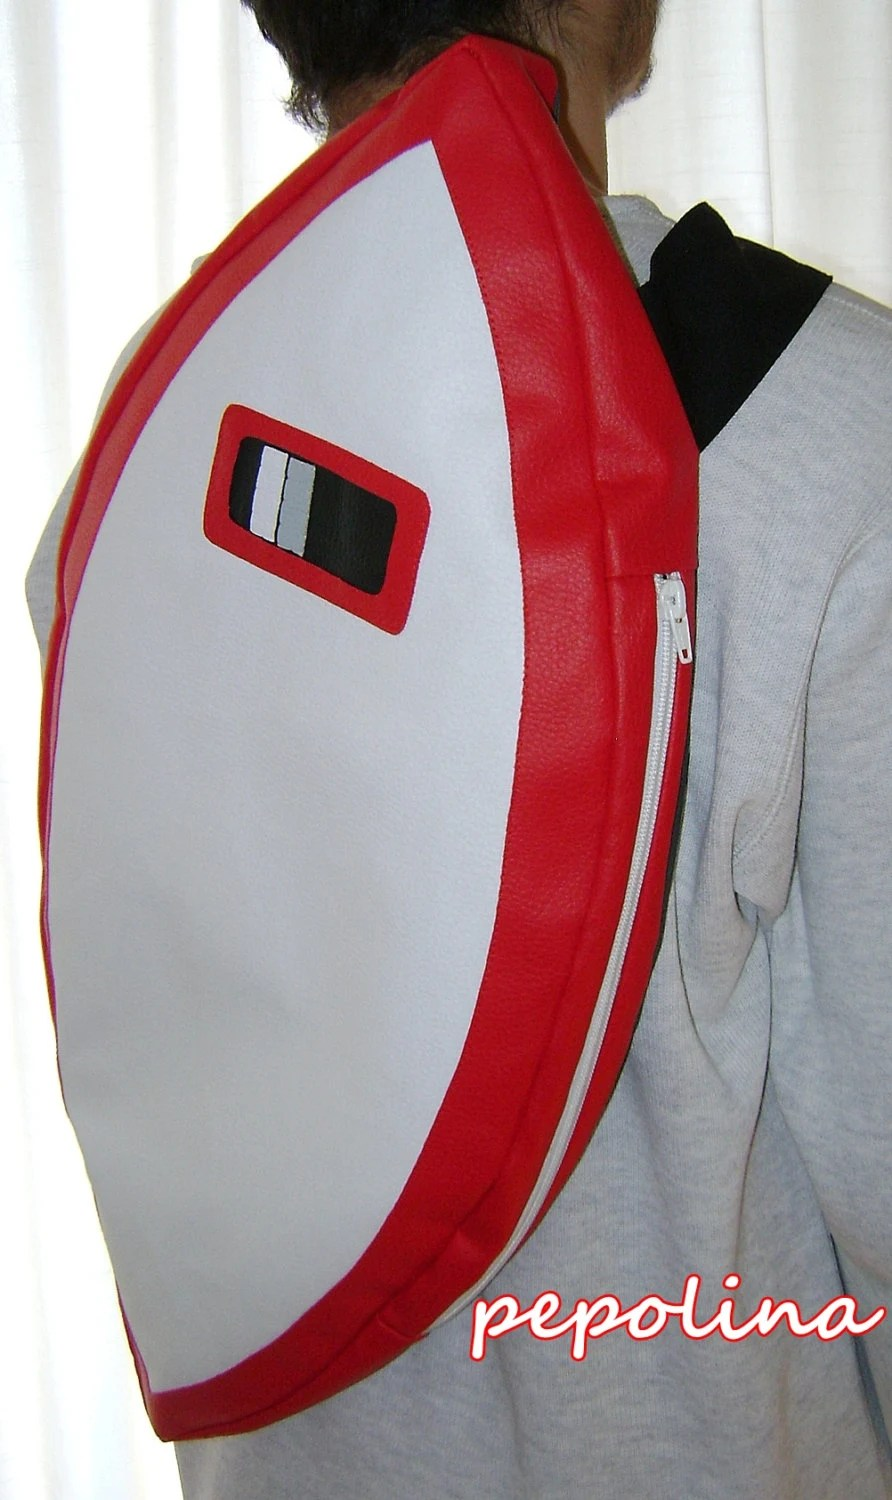 Proto Mans Proto Shield Backpack By Ivanapepolina On Etsy